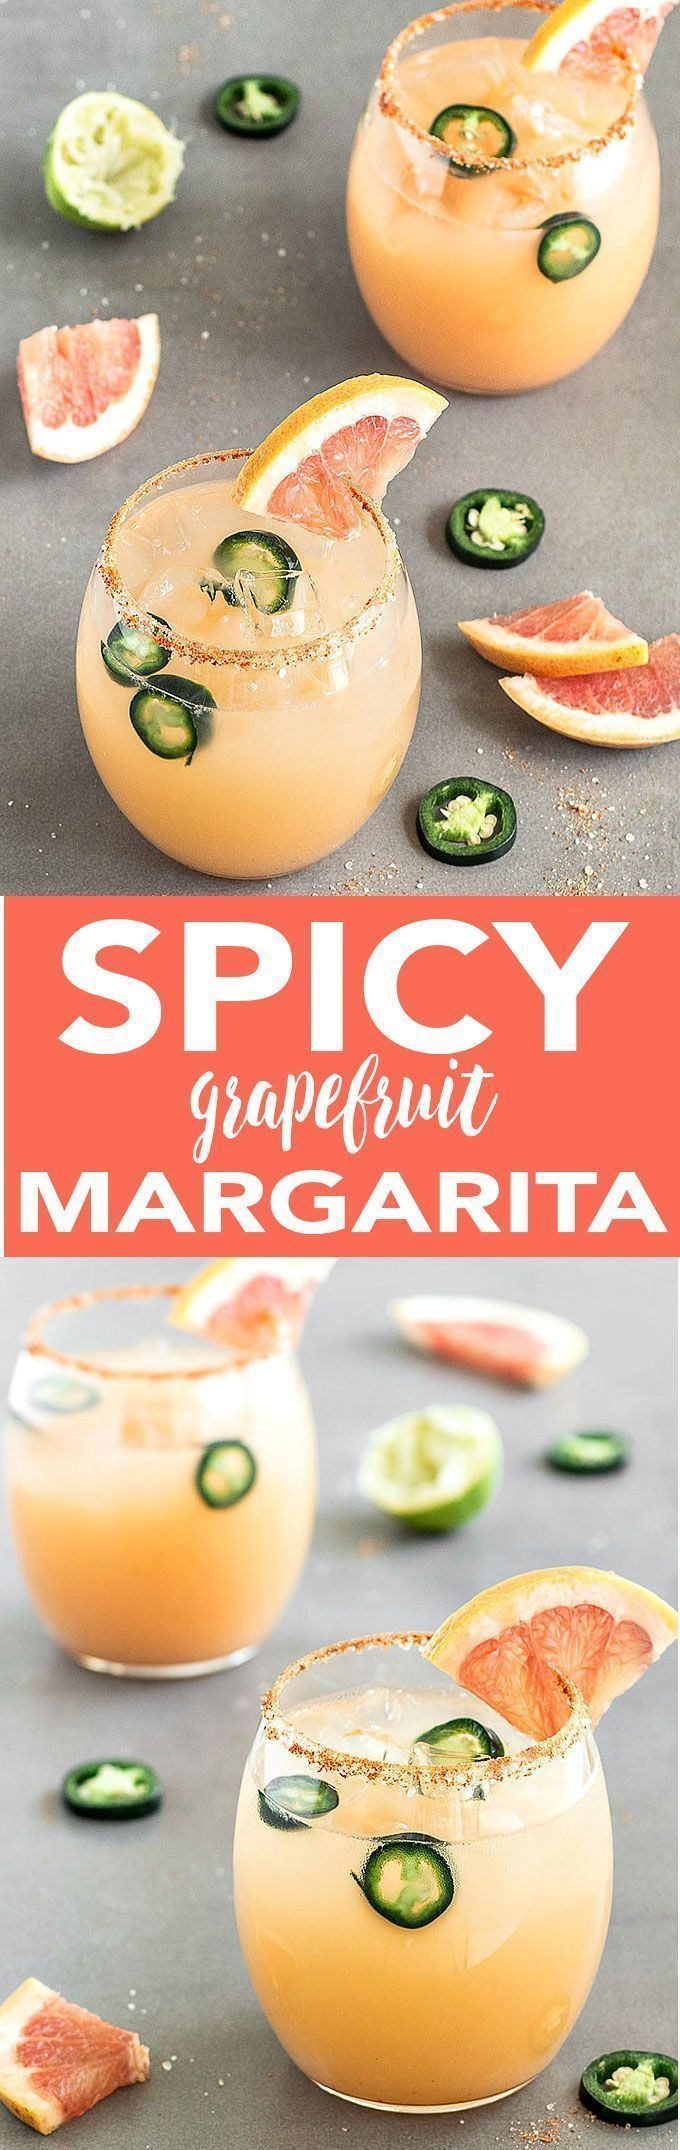 Spicy Grapefruit Jalapeño Margarita - A fun twist on a classic drink! Salty, spicy, sweet, tart and absolutely refreshing!